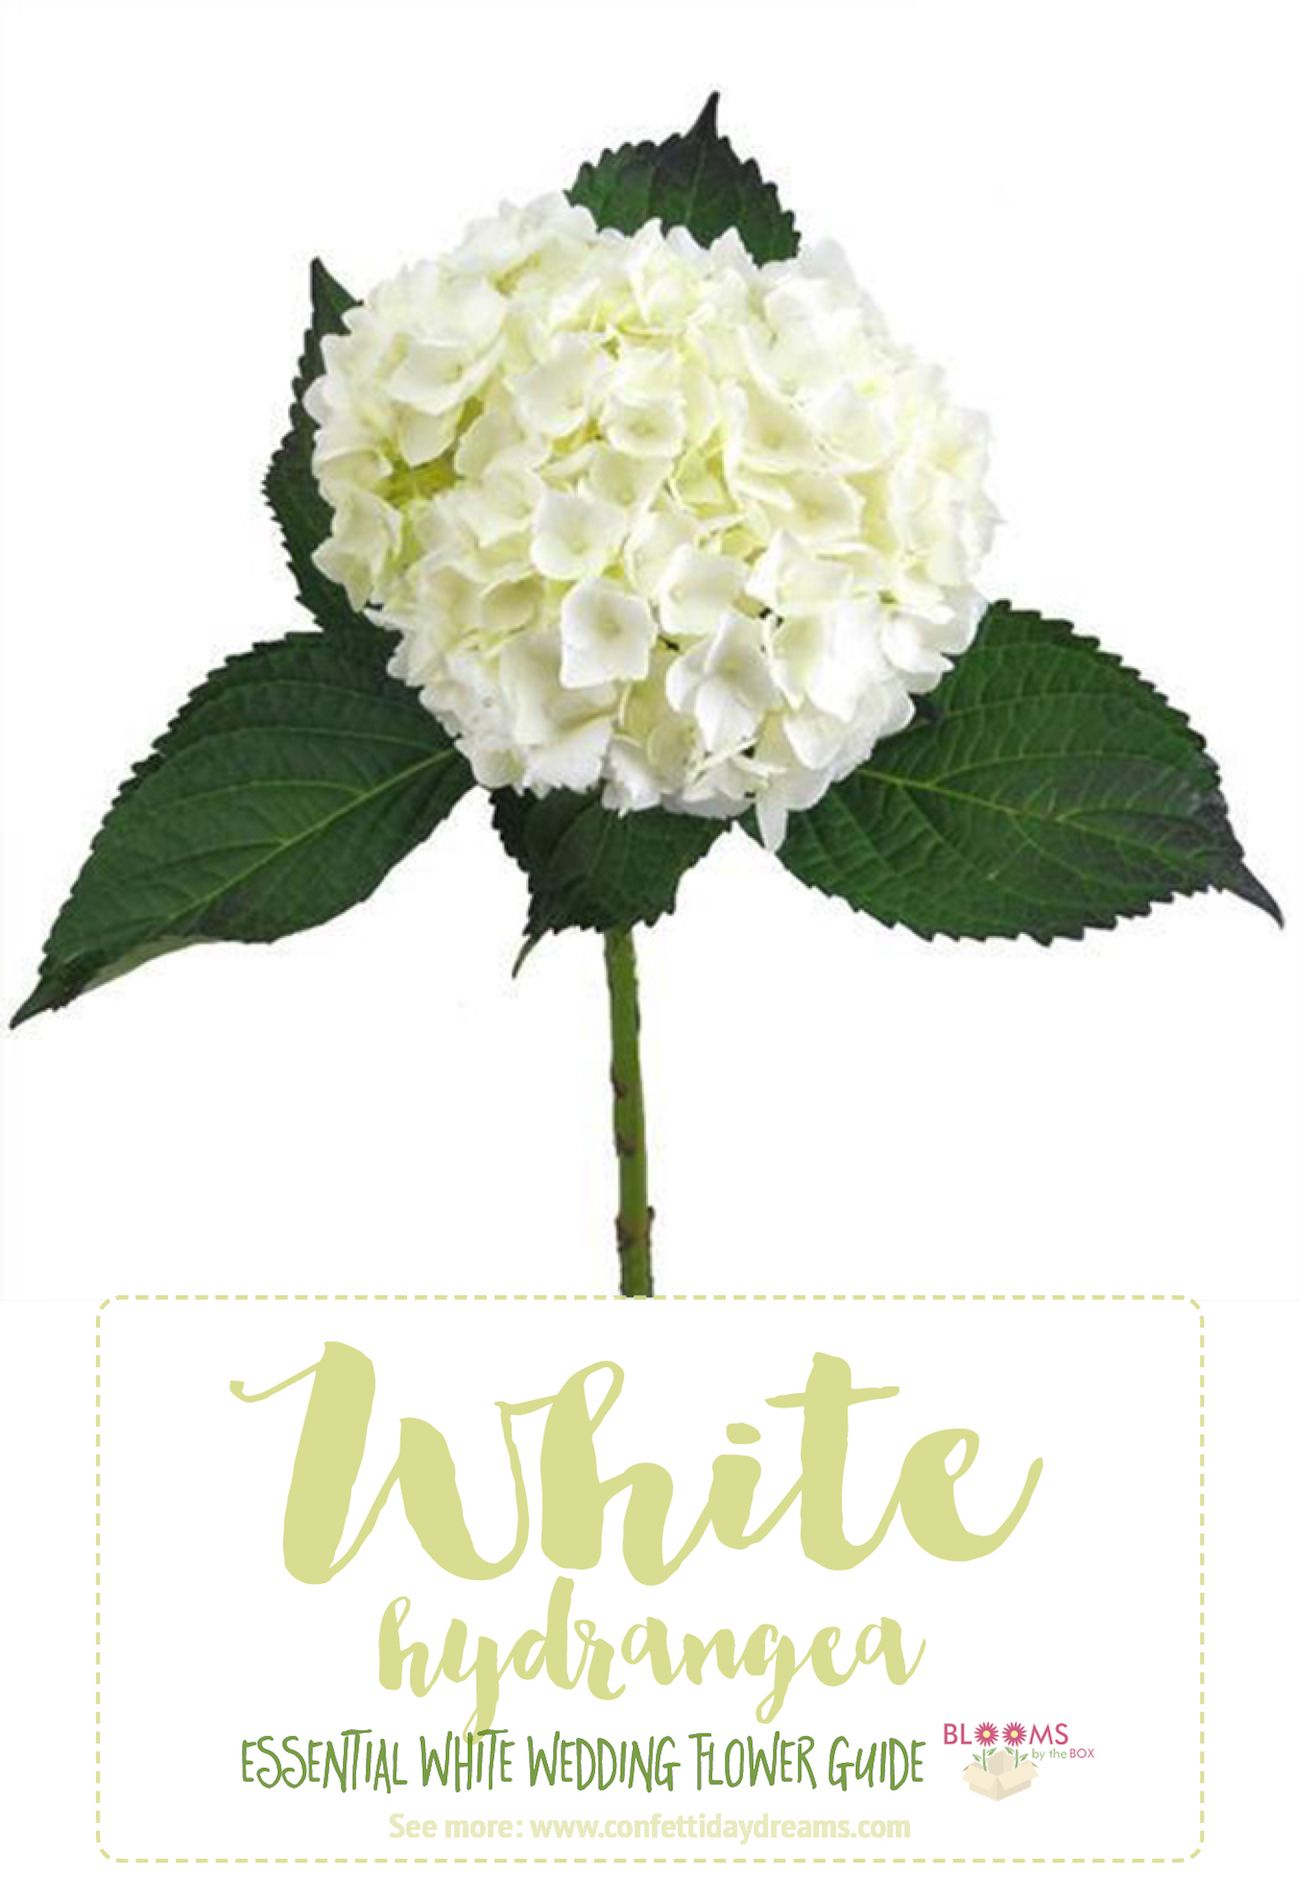 Essential white wedding flower guide names types pics white essential white wedding flower guide names types pics mightylinksfo